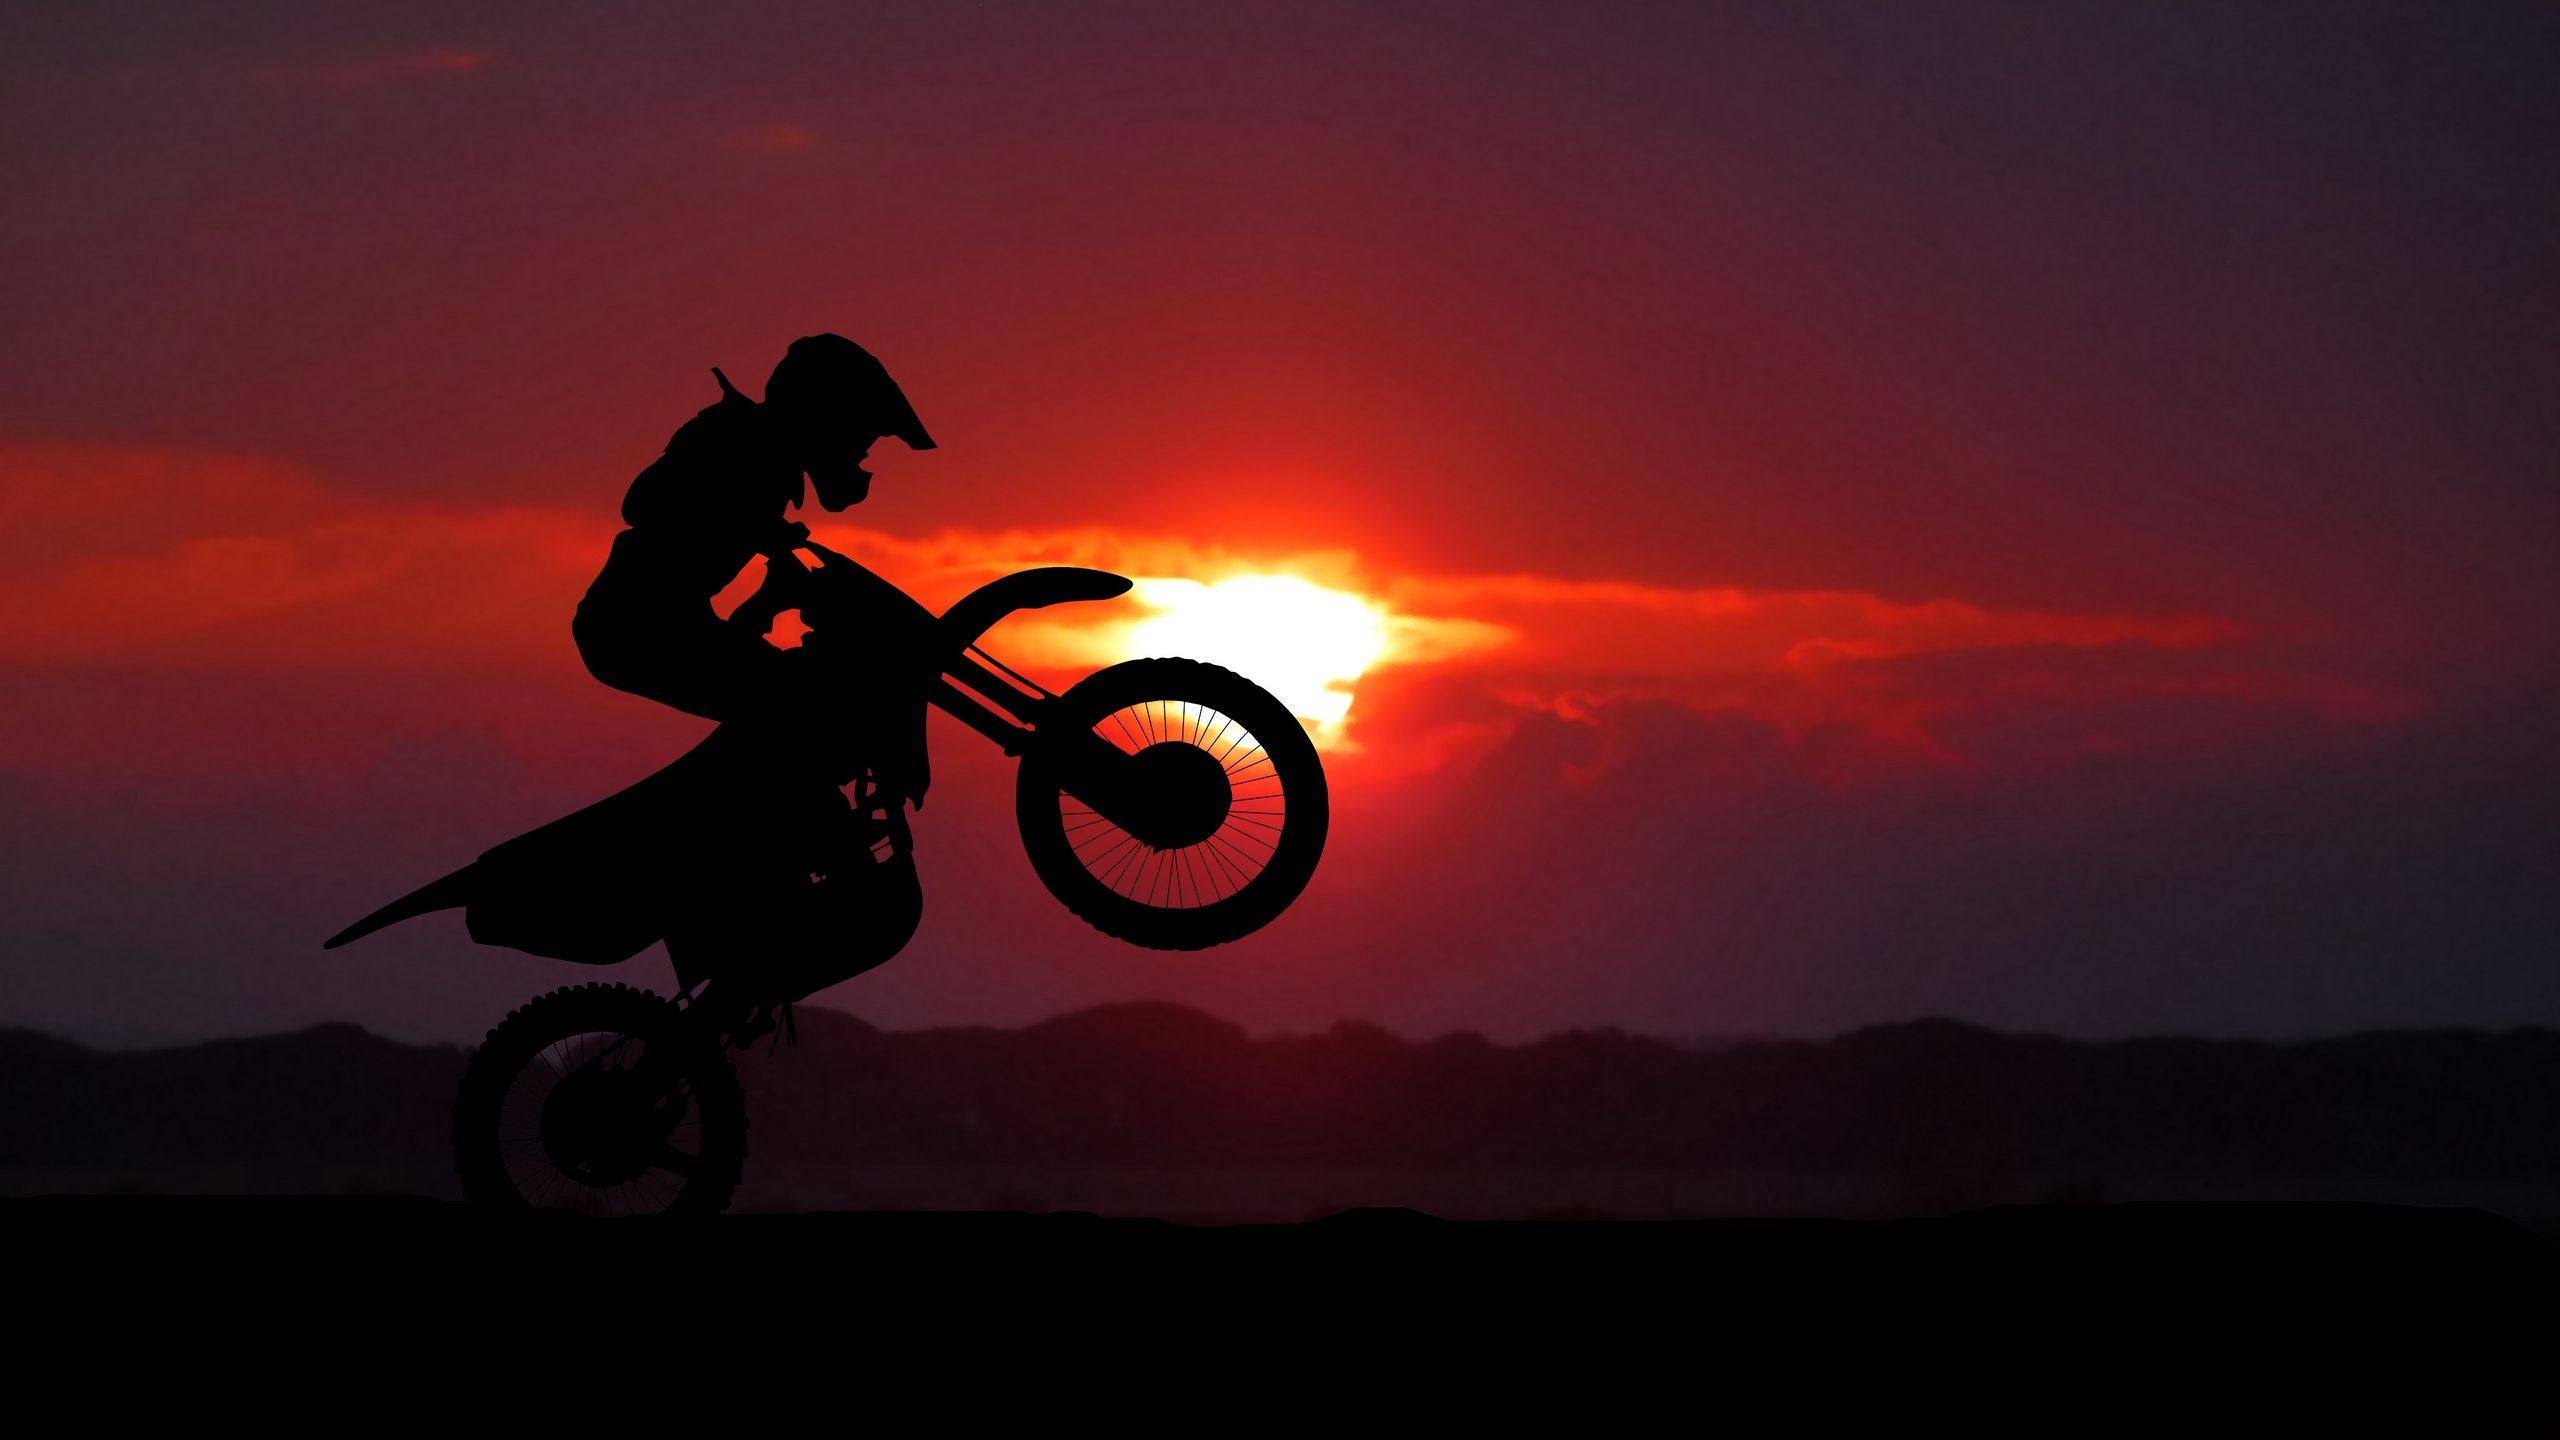 2560X1440 Motorcycle Wallpapers   Top 2560X1440 Motorcycle 2560x1440